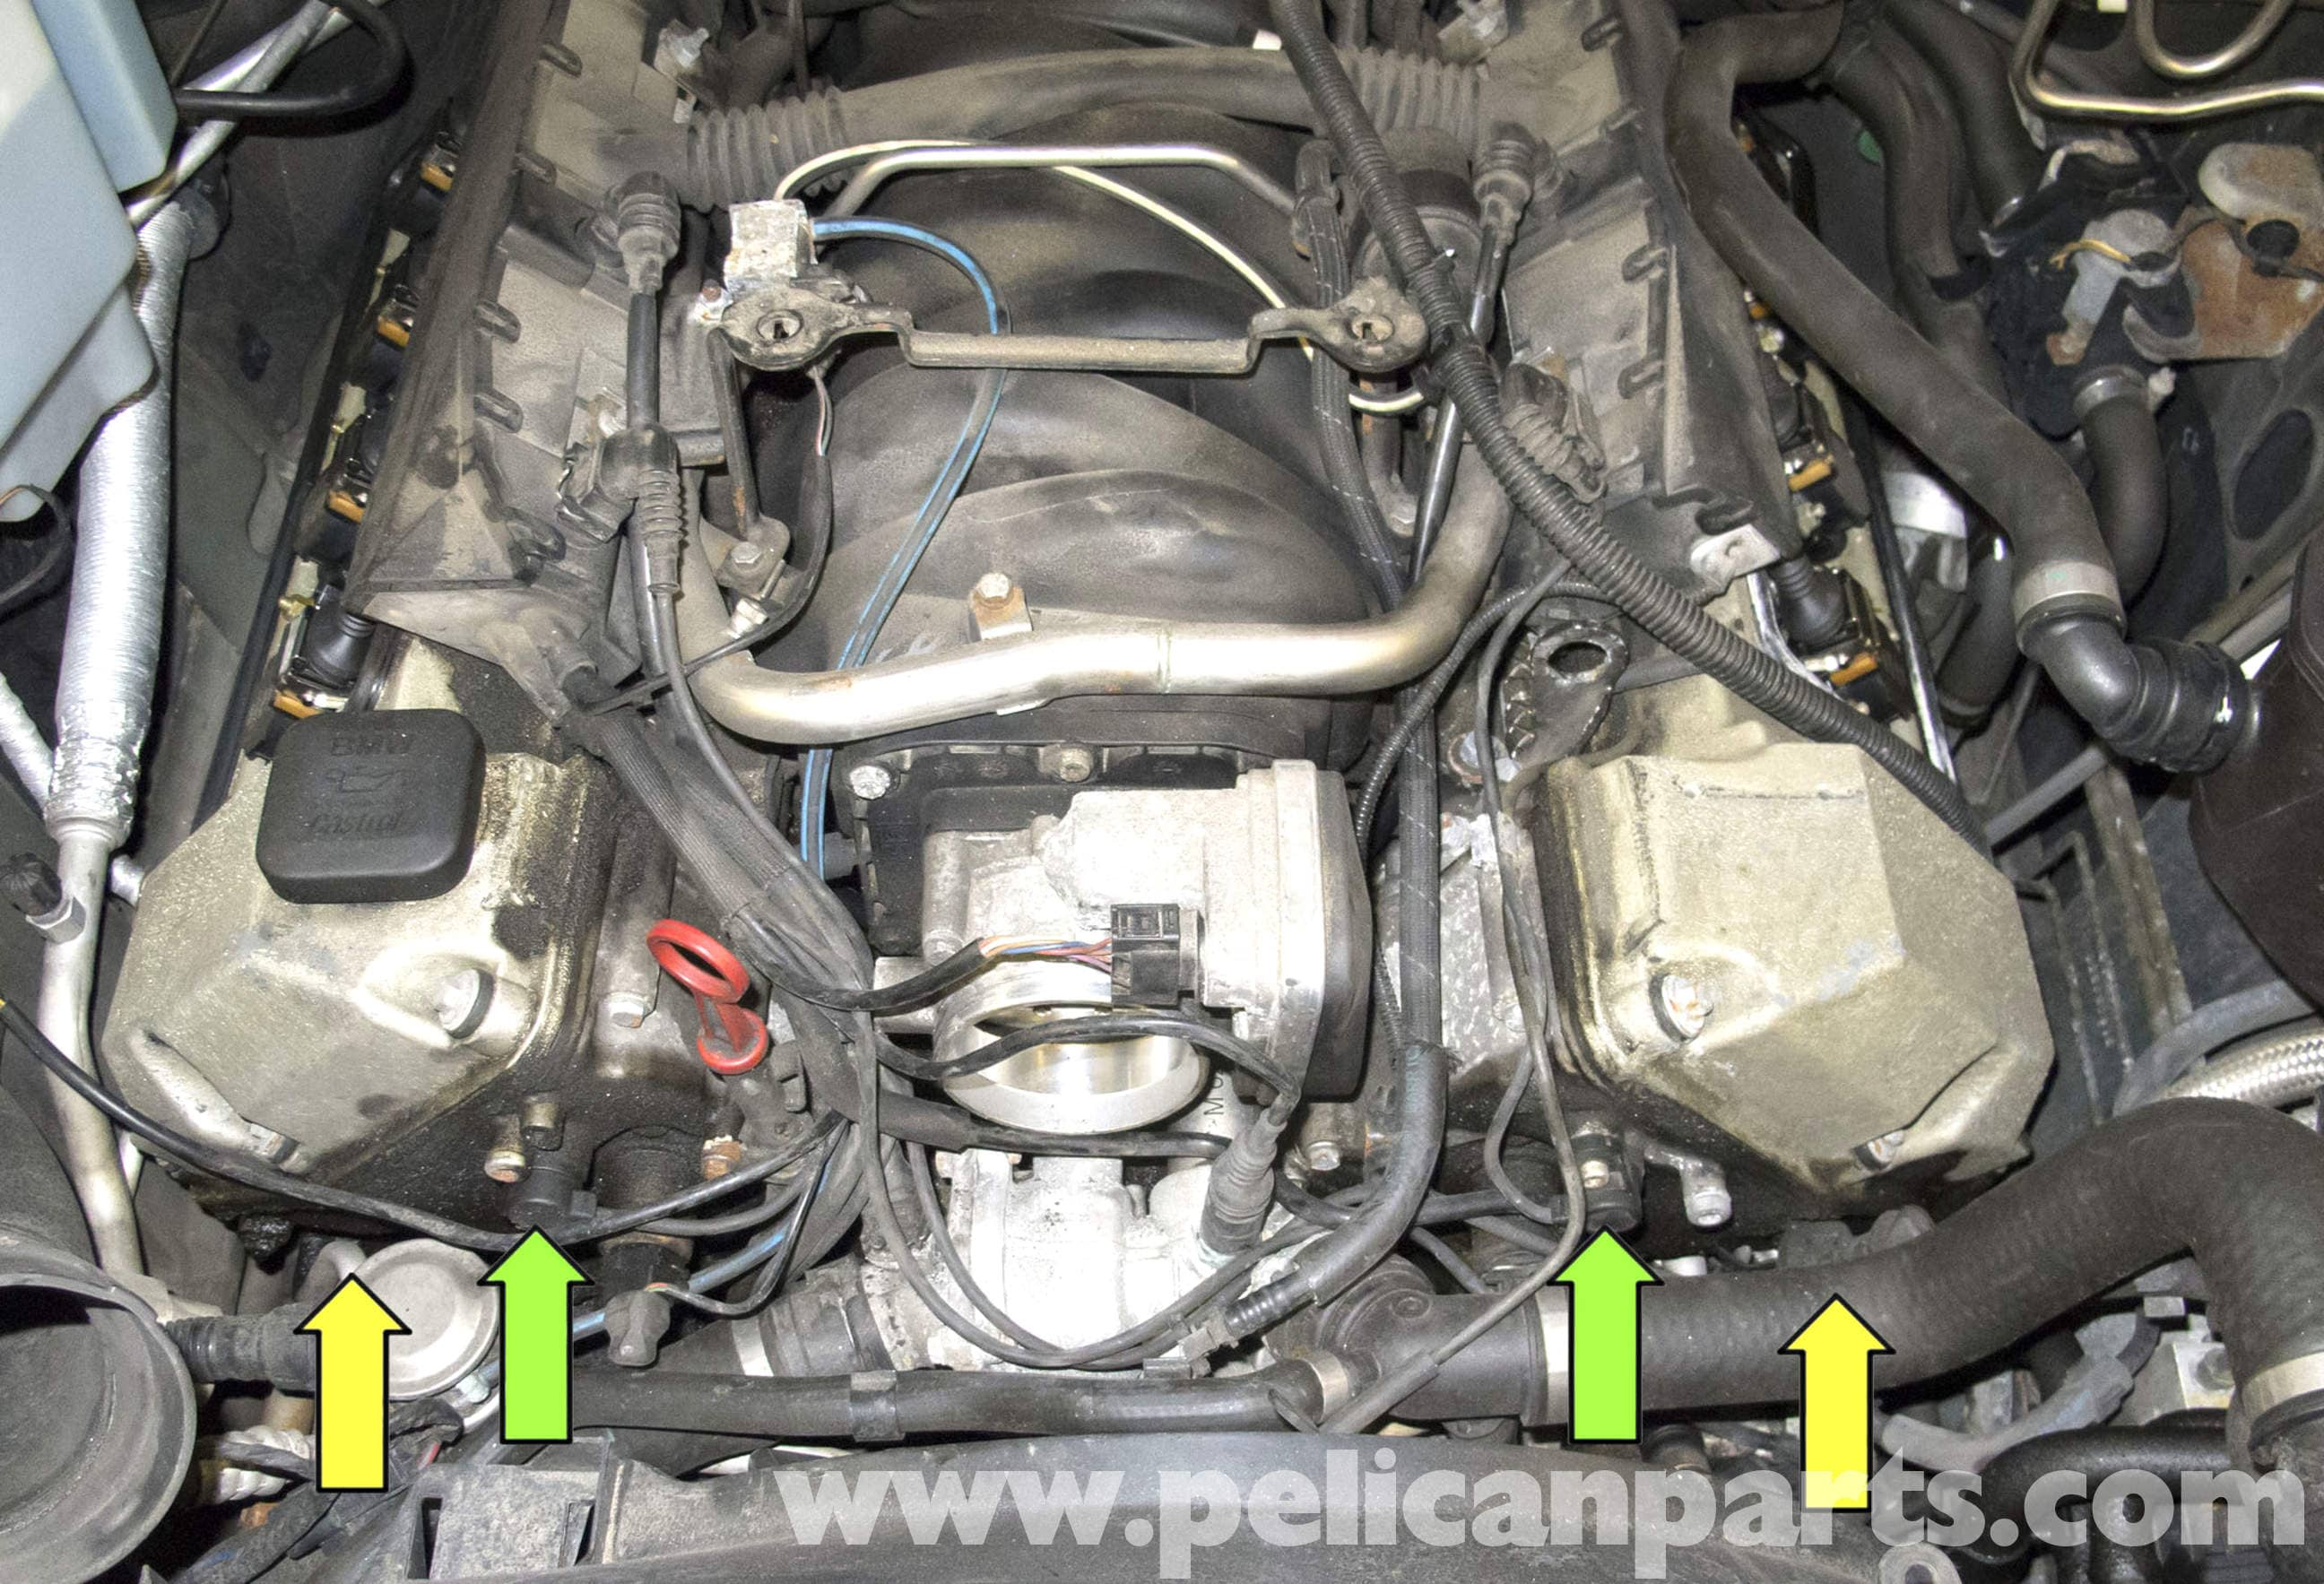 Bmw X5 M62 8 Cylinder Camshaft Position Sensor Replacement (e53 2000 2002 BMW  X5 Engine 2002 Bmw X5 Motor Wiring Harness